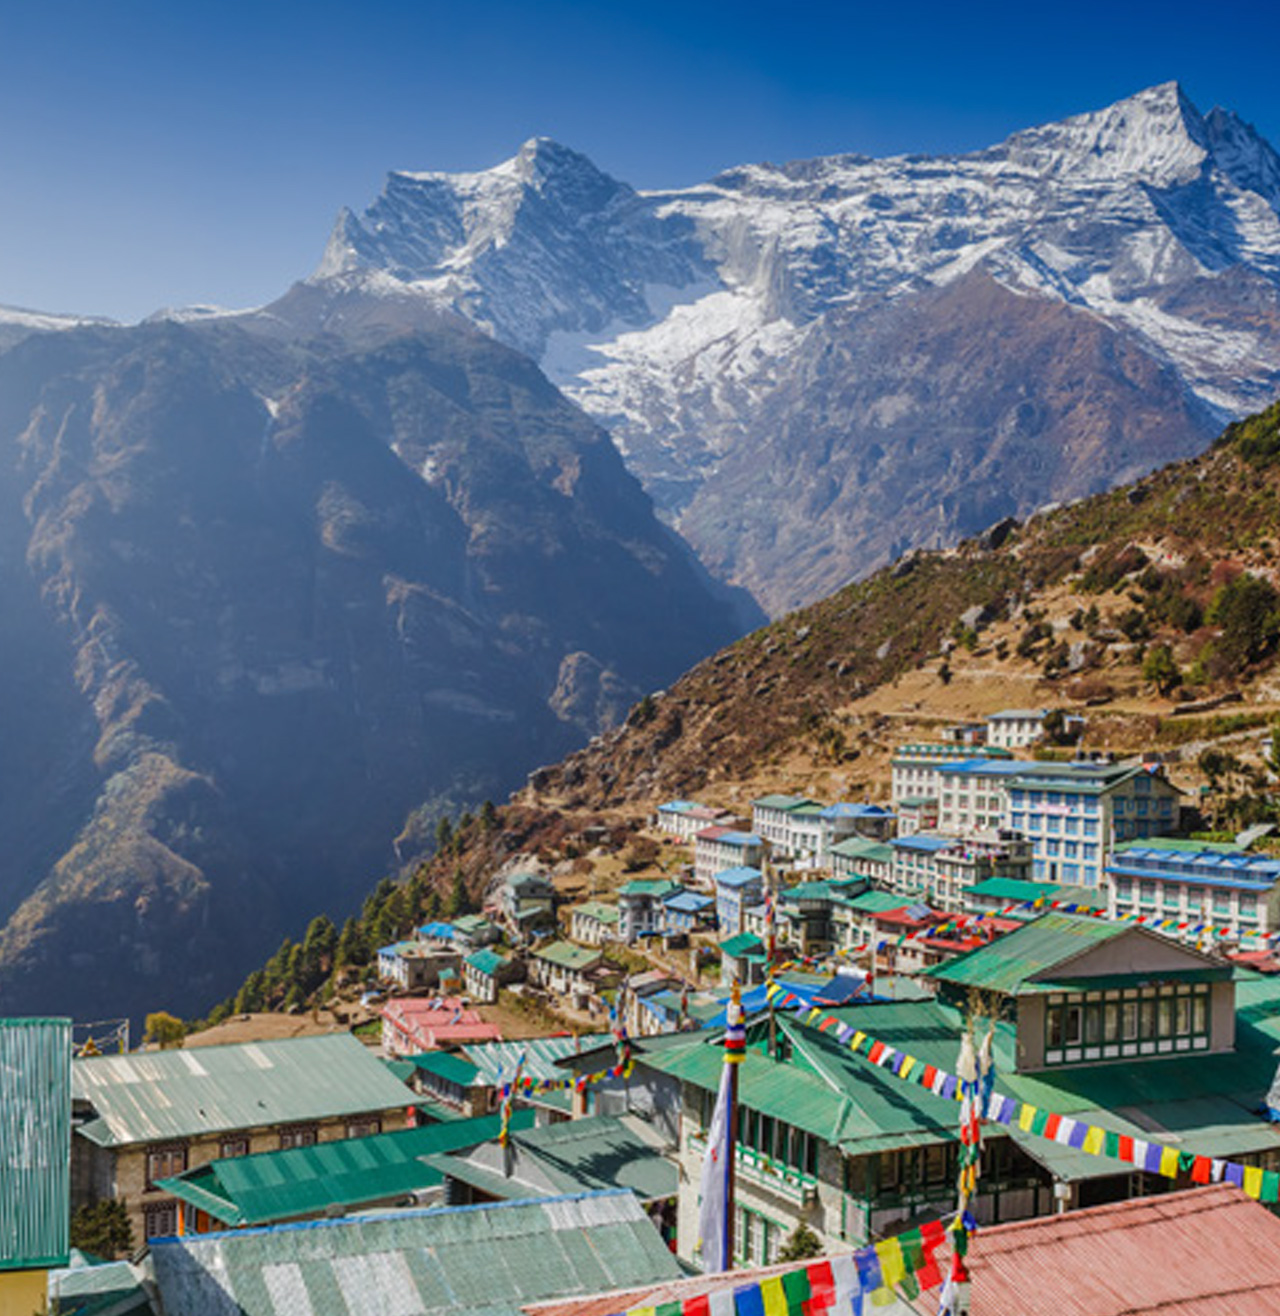 PRODUCING EGGS ON THE TOP OF THE WORLD LOHMANN'S SUCCESS IN NEPAL